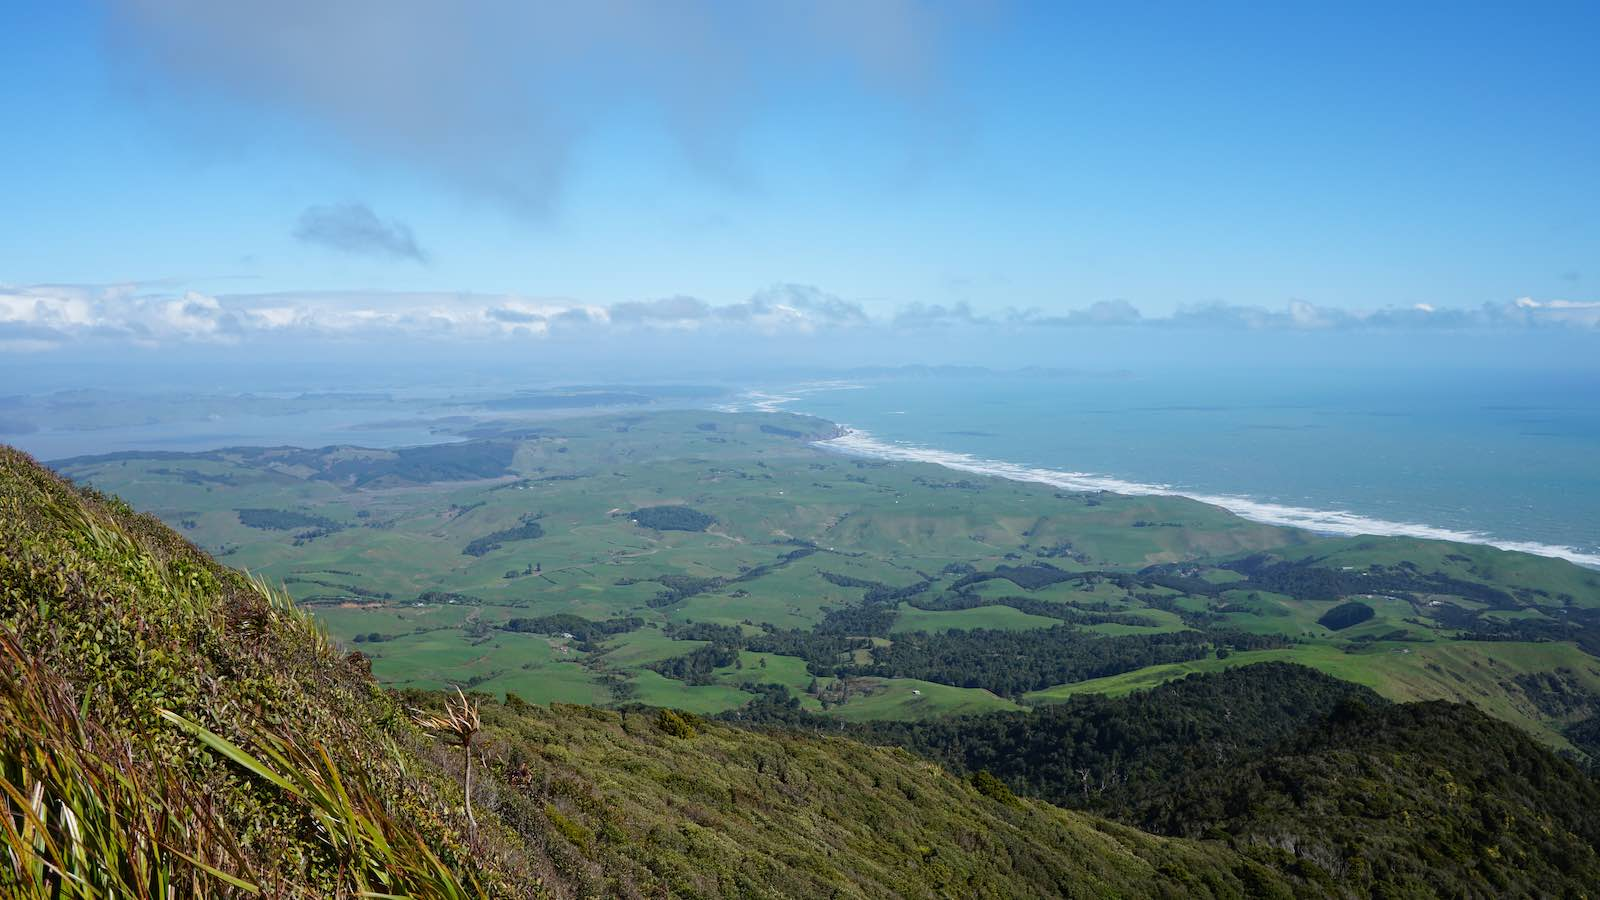 Still a long road ahead. I took this photo halfway up a dormant volcano outside of Raglan, New Zealand.